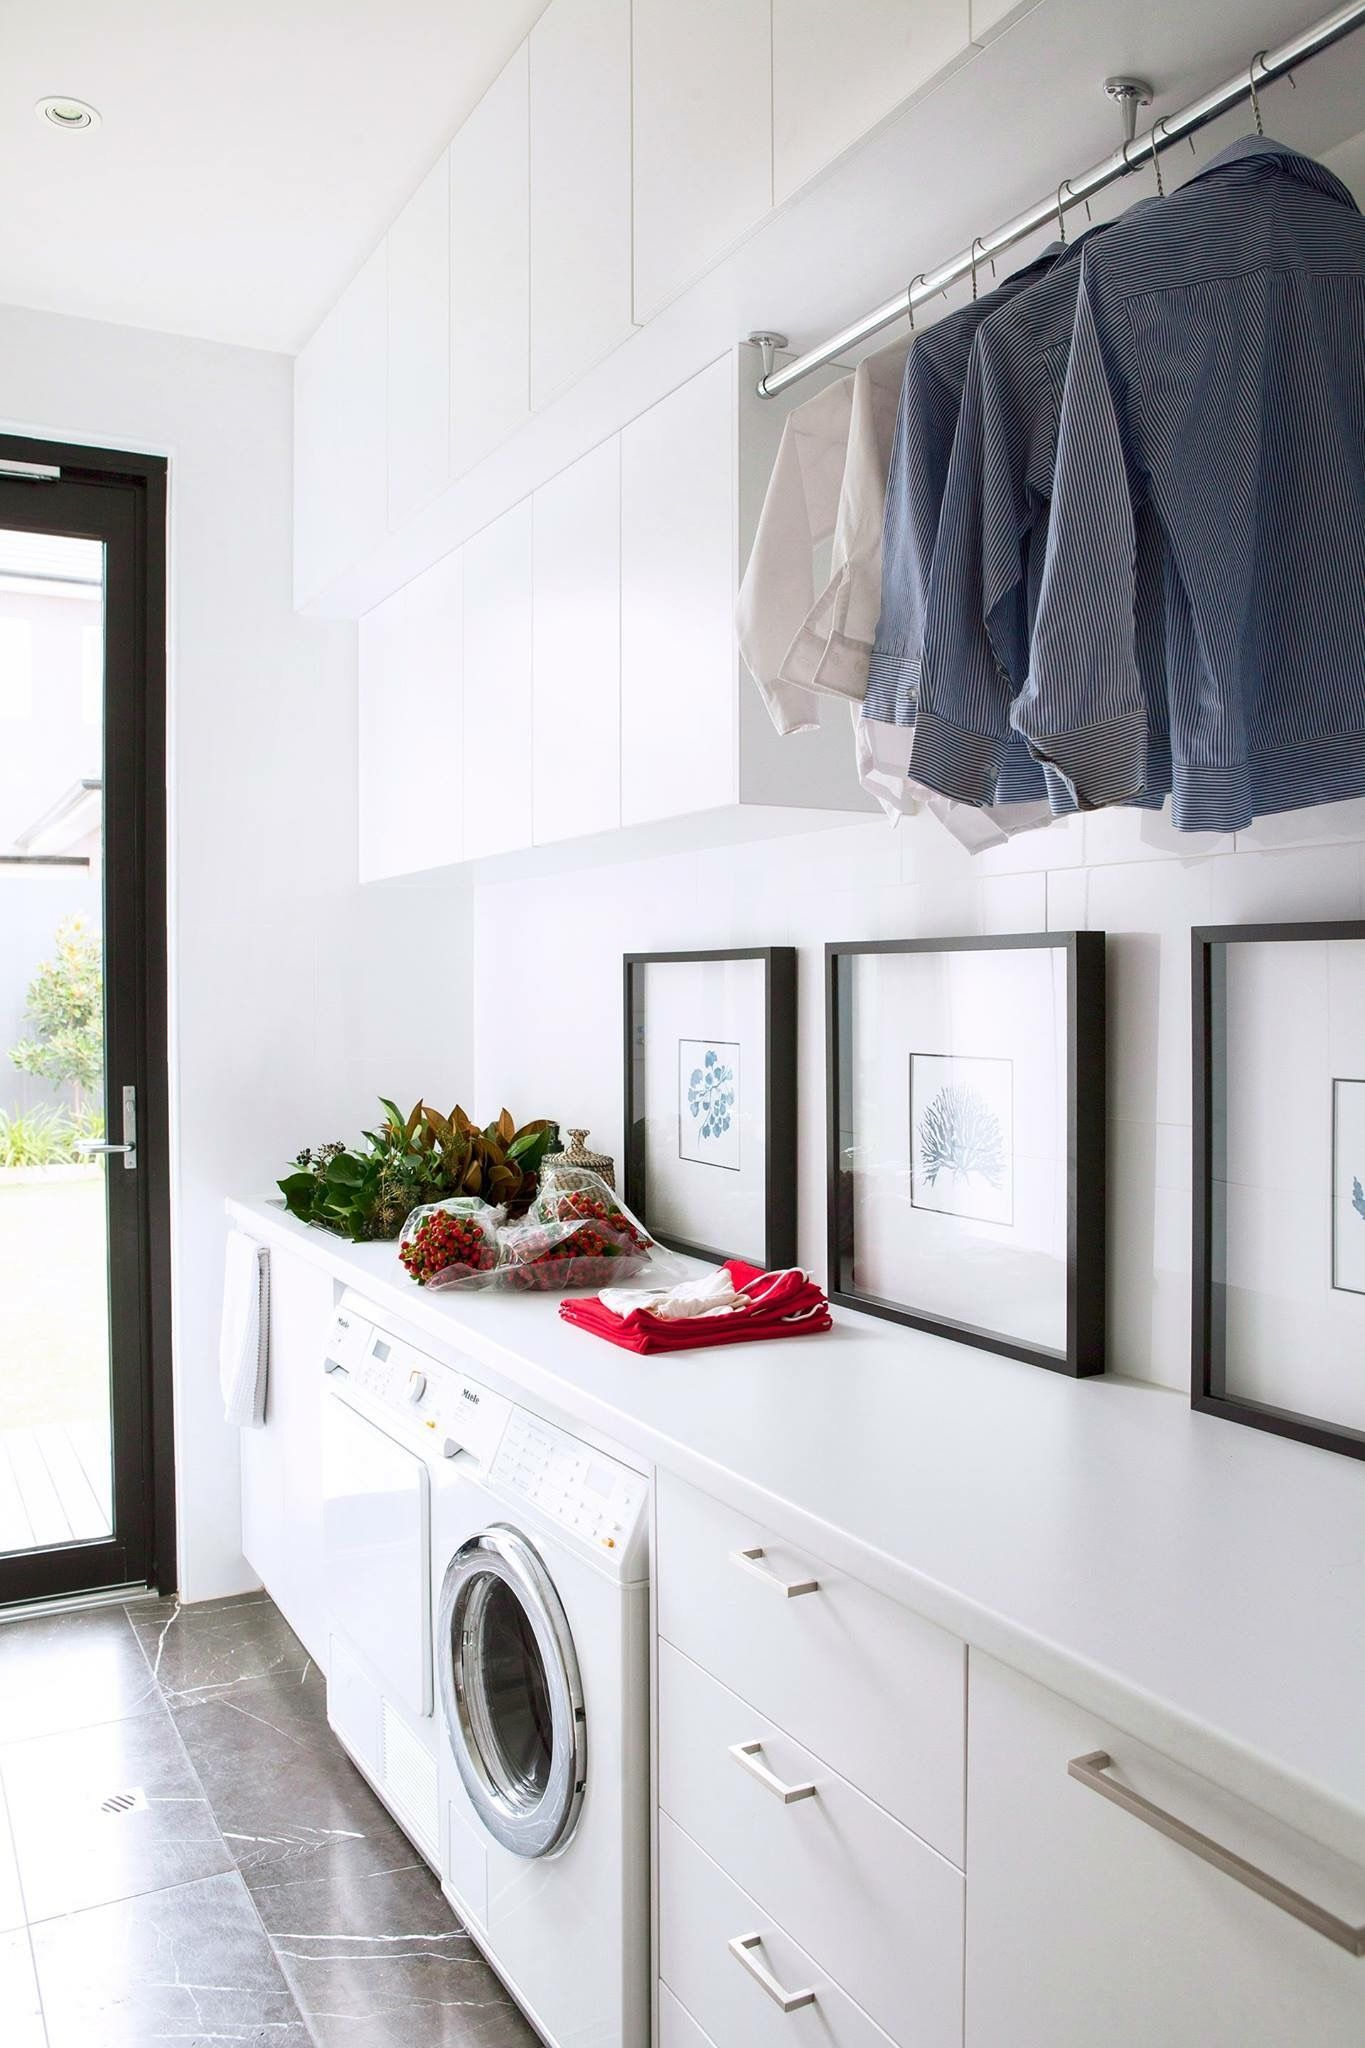 Hanging Space And Long Bench Not Sure About The Top Overhead Cupboards Laundry Room Design Laundry In Bathroom Laundry Design